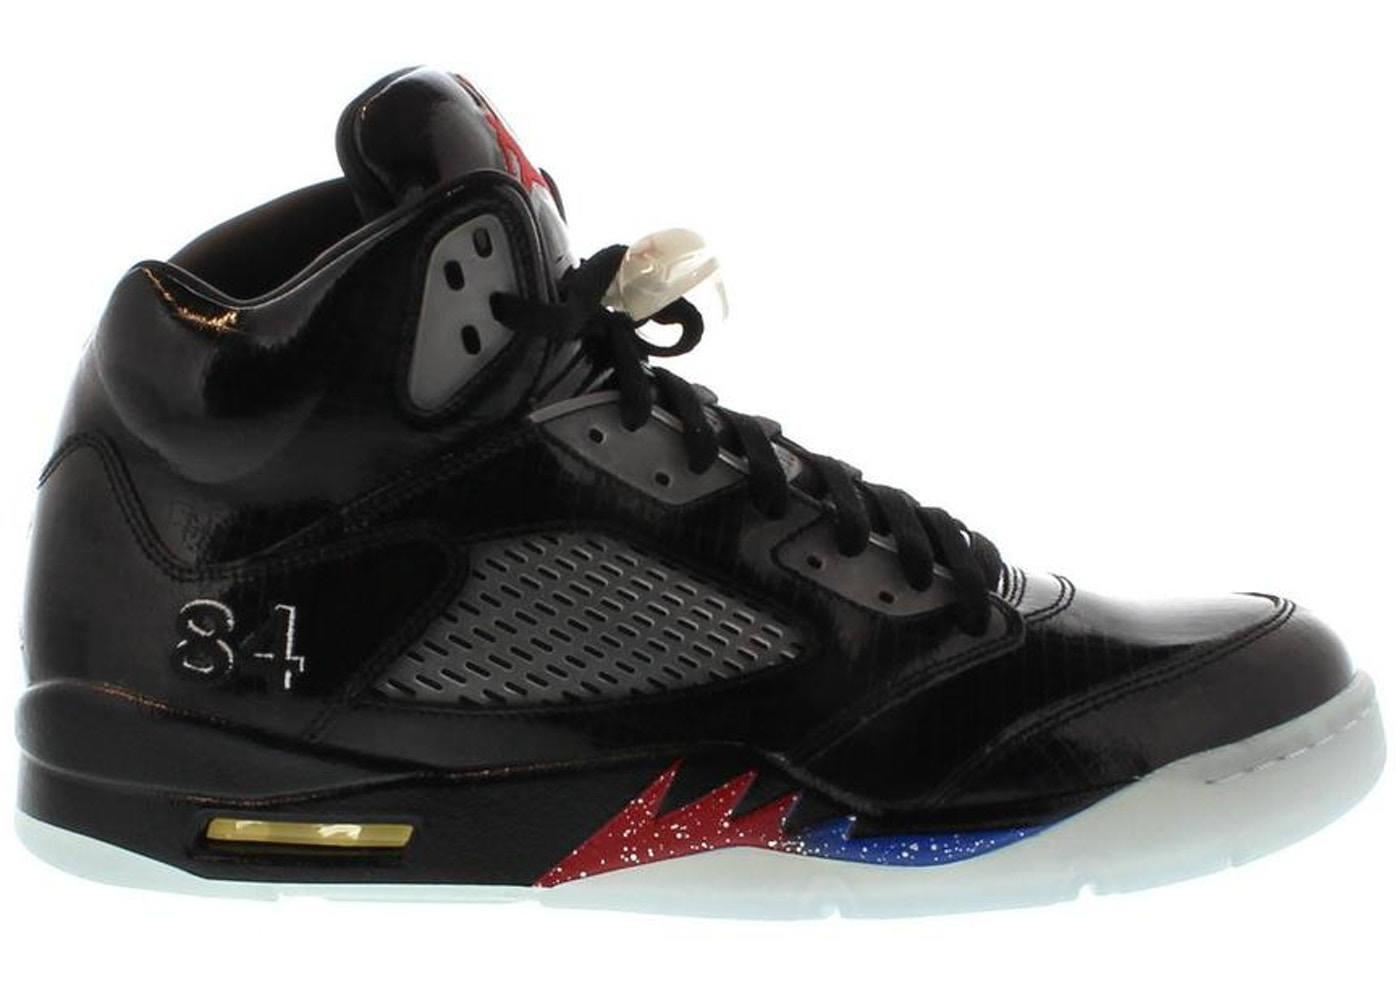 most expensive air jordans in the world